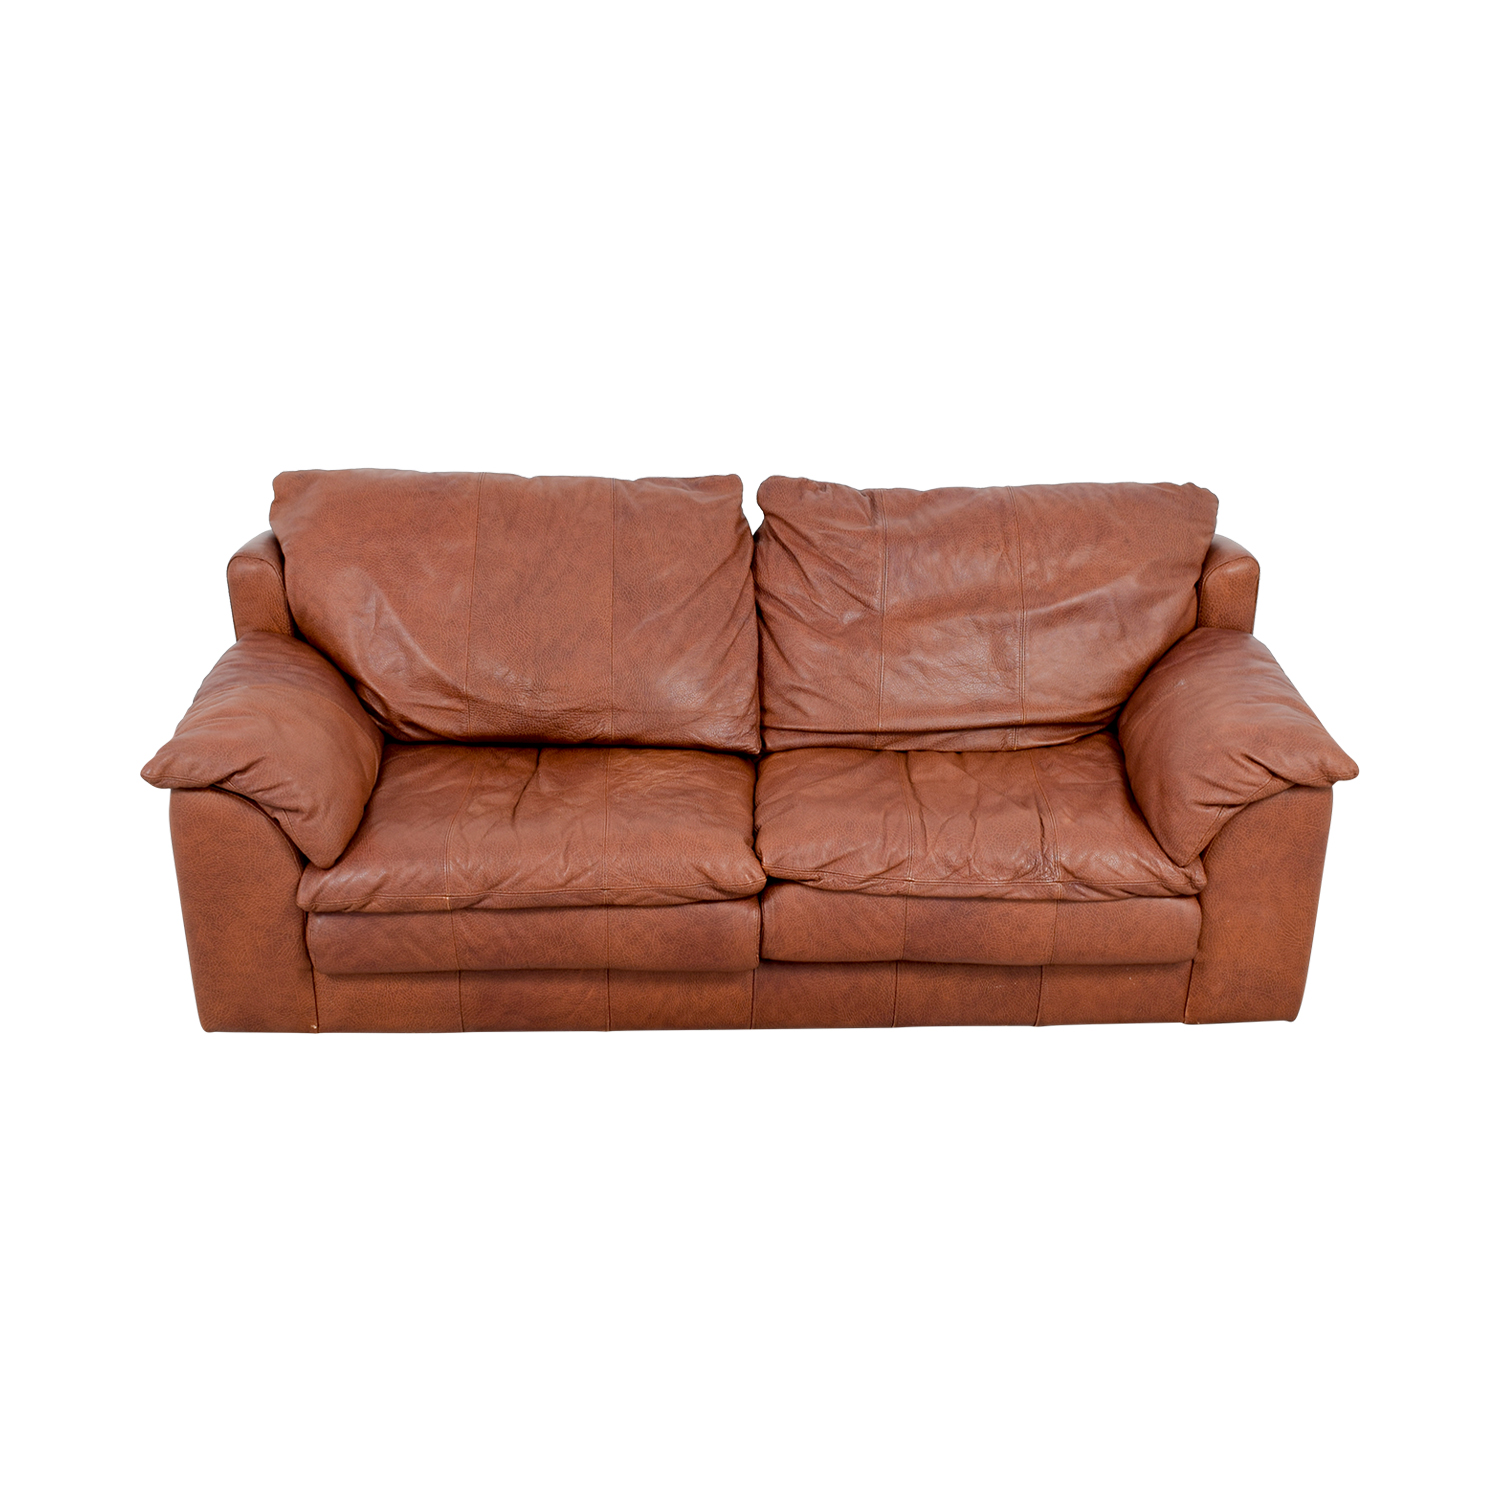 Rust Two-Cushion Leather Couch with Pillowed Arms second hand